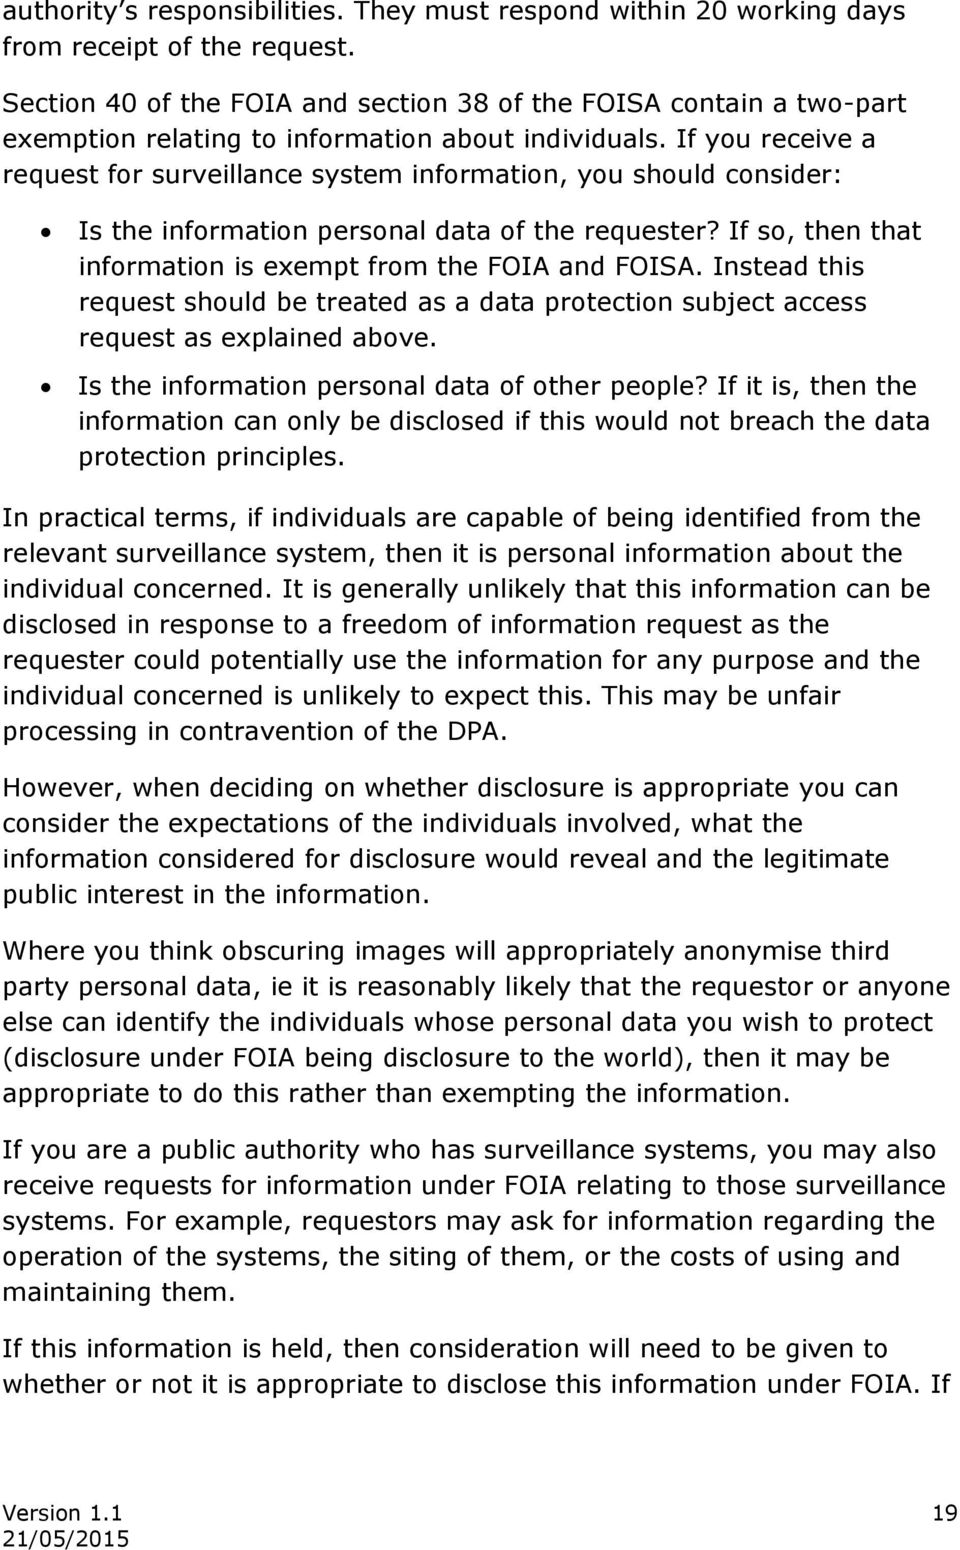 If you receive a request for surveillance system information, you should consider: Is the information personal data of the requester? If so, then that information is exempt from the FOIA and FOISA.